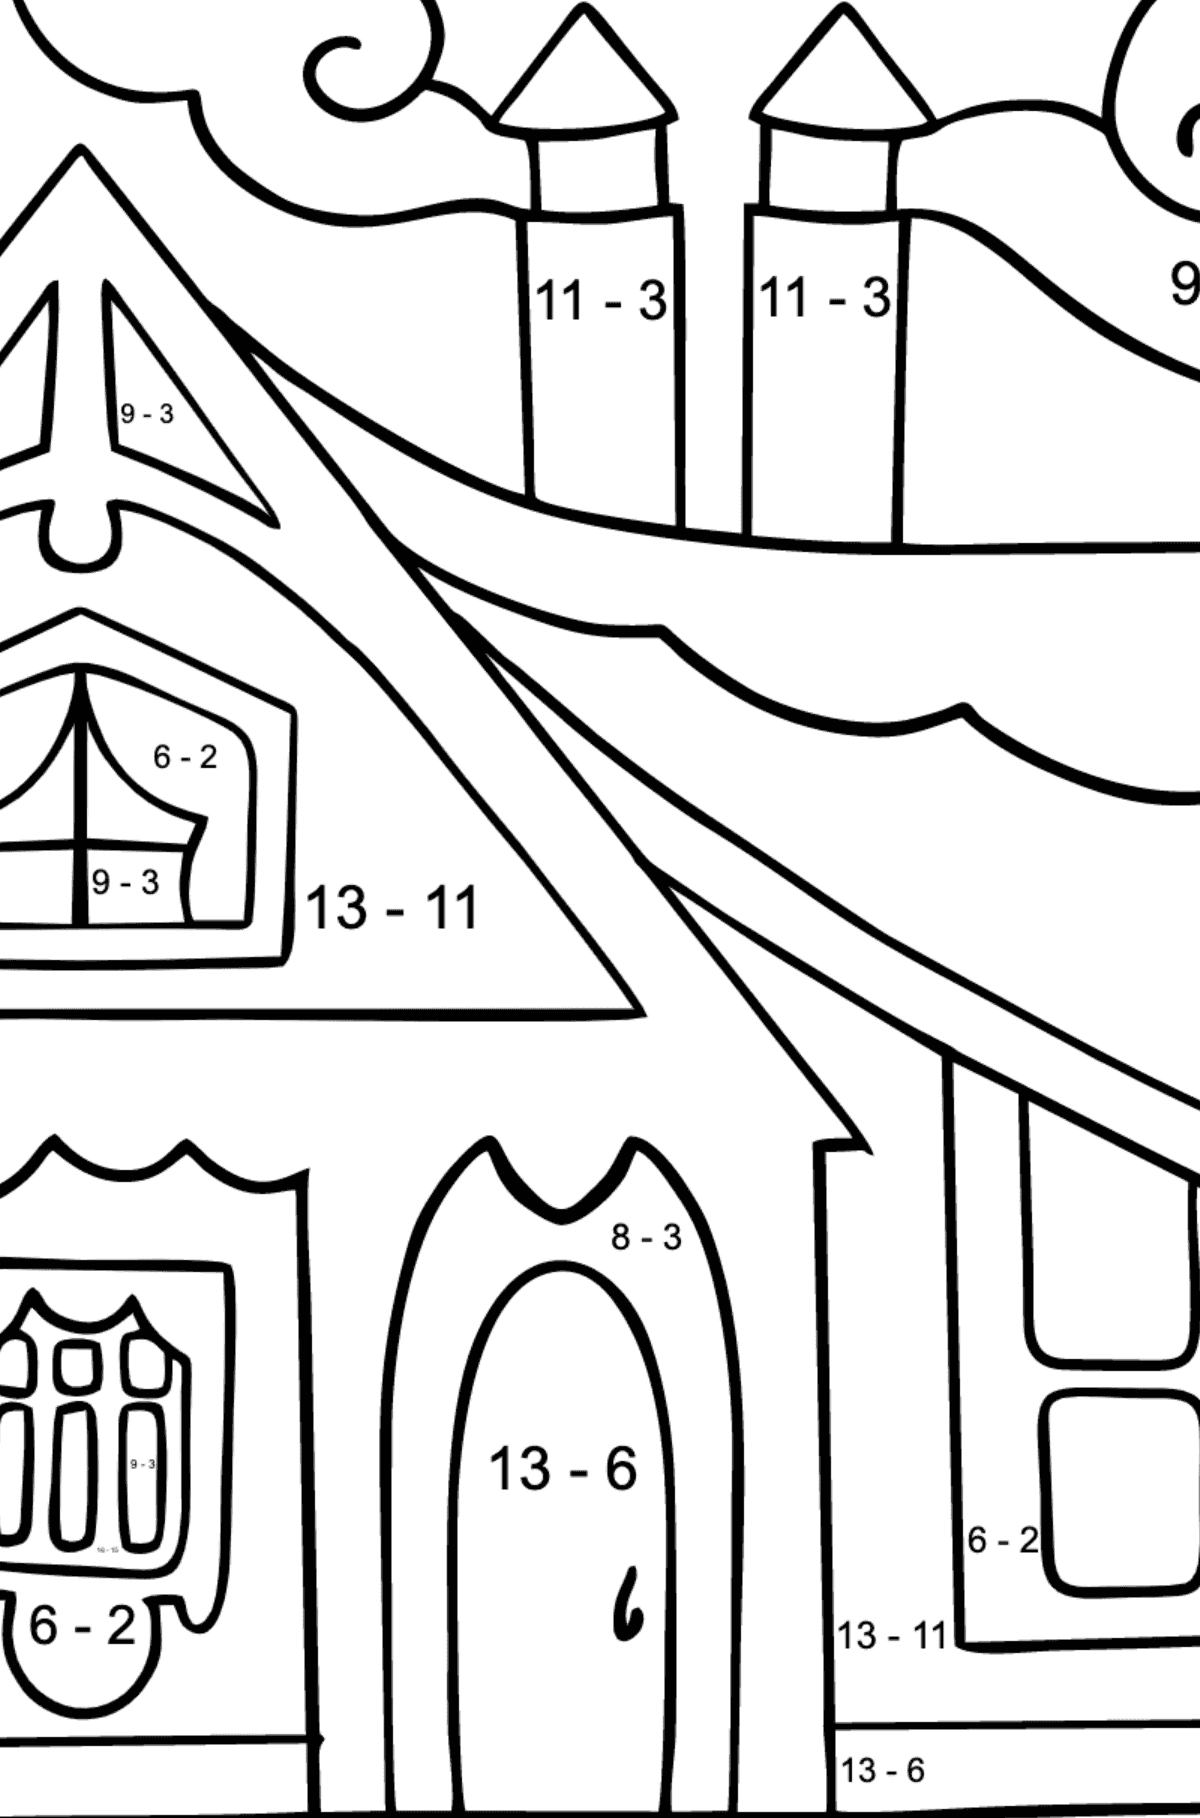 Coloring Page - A Tiny House - Math Coloring - Subtraction for Children